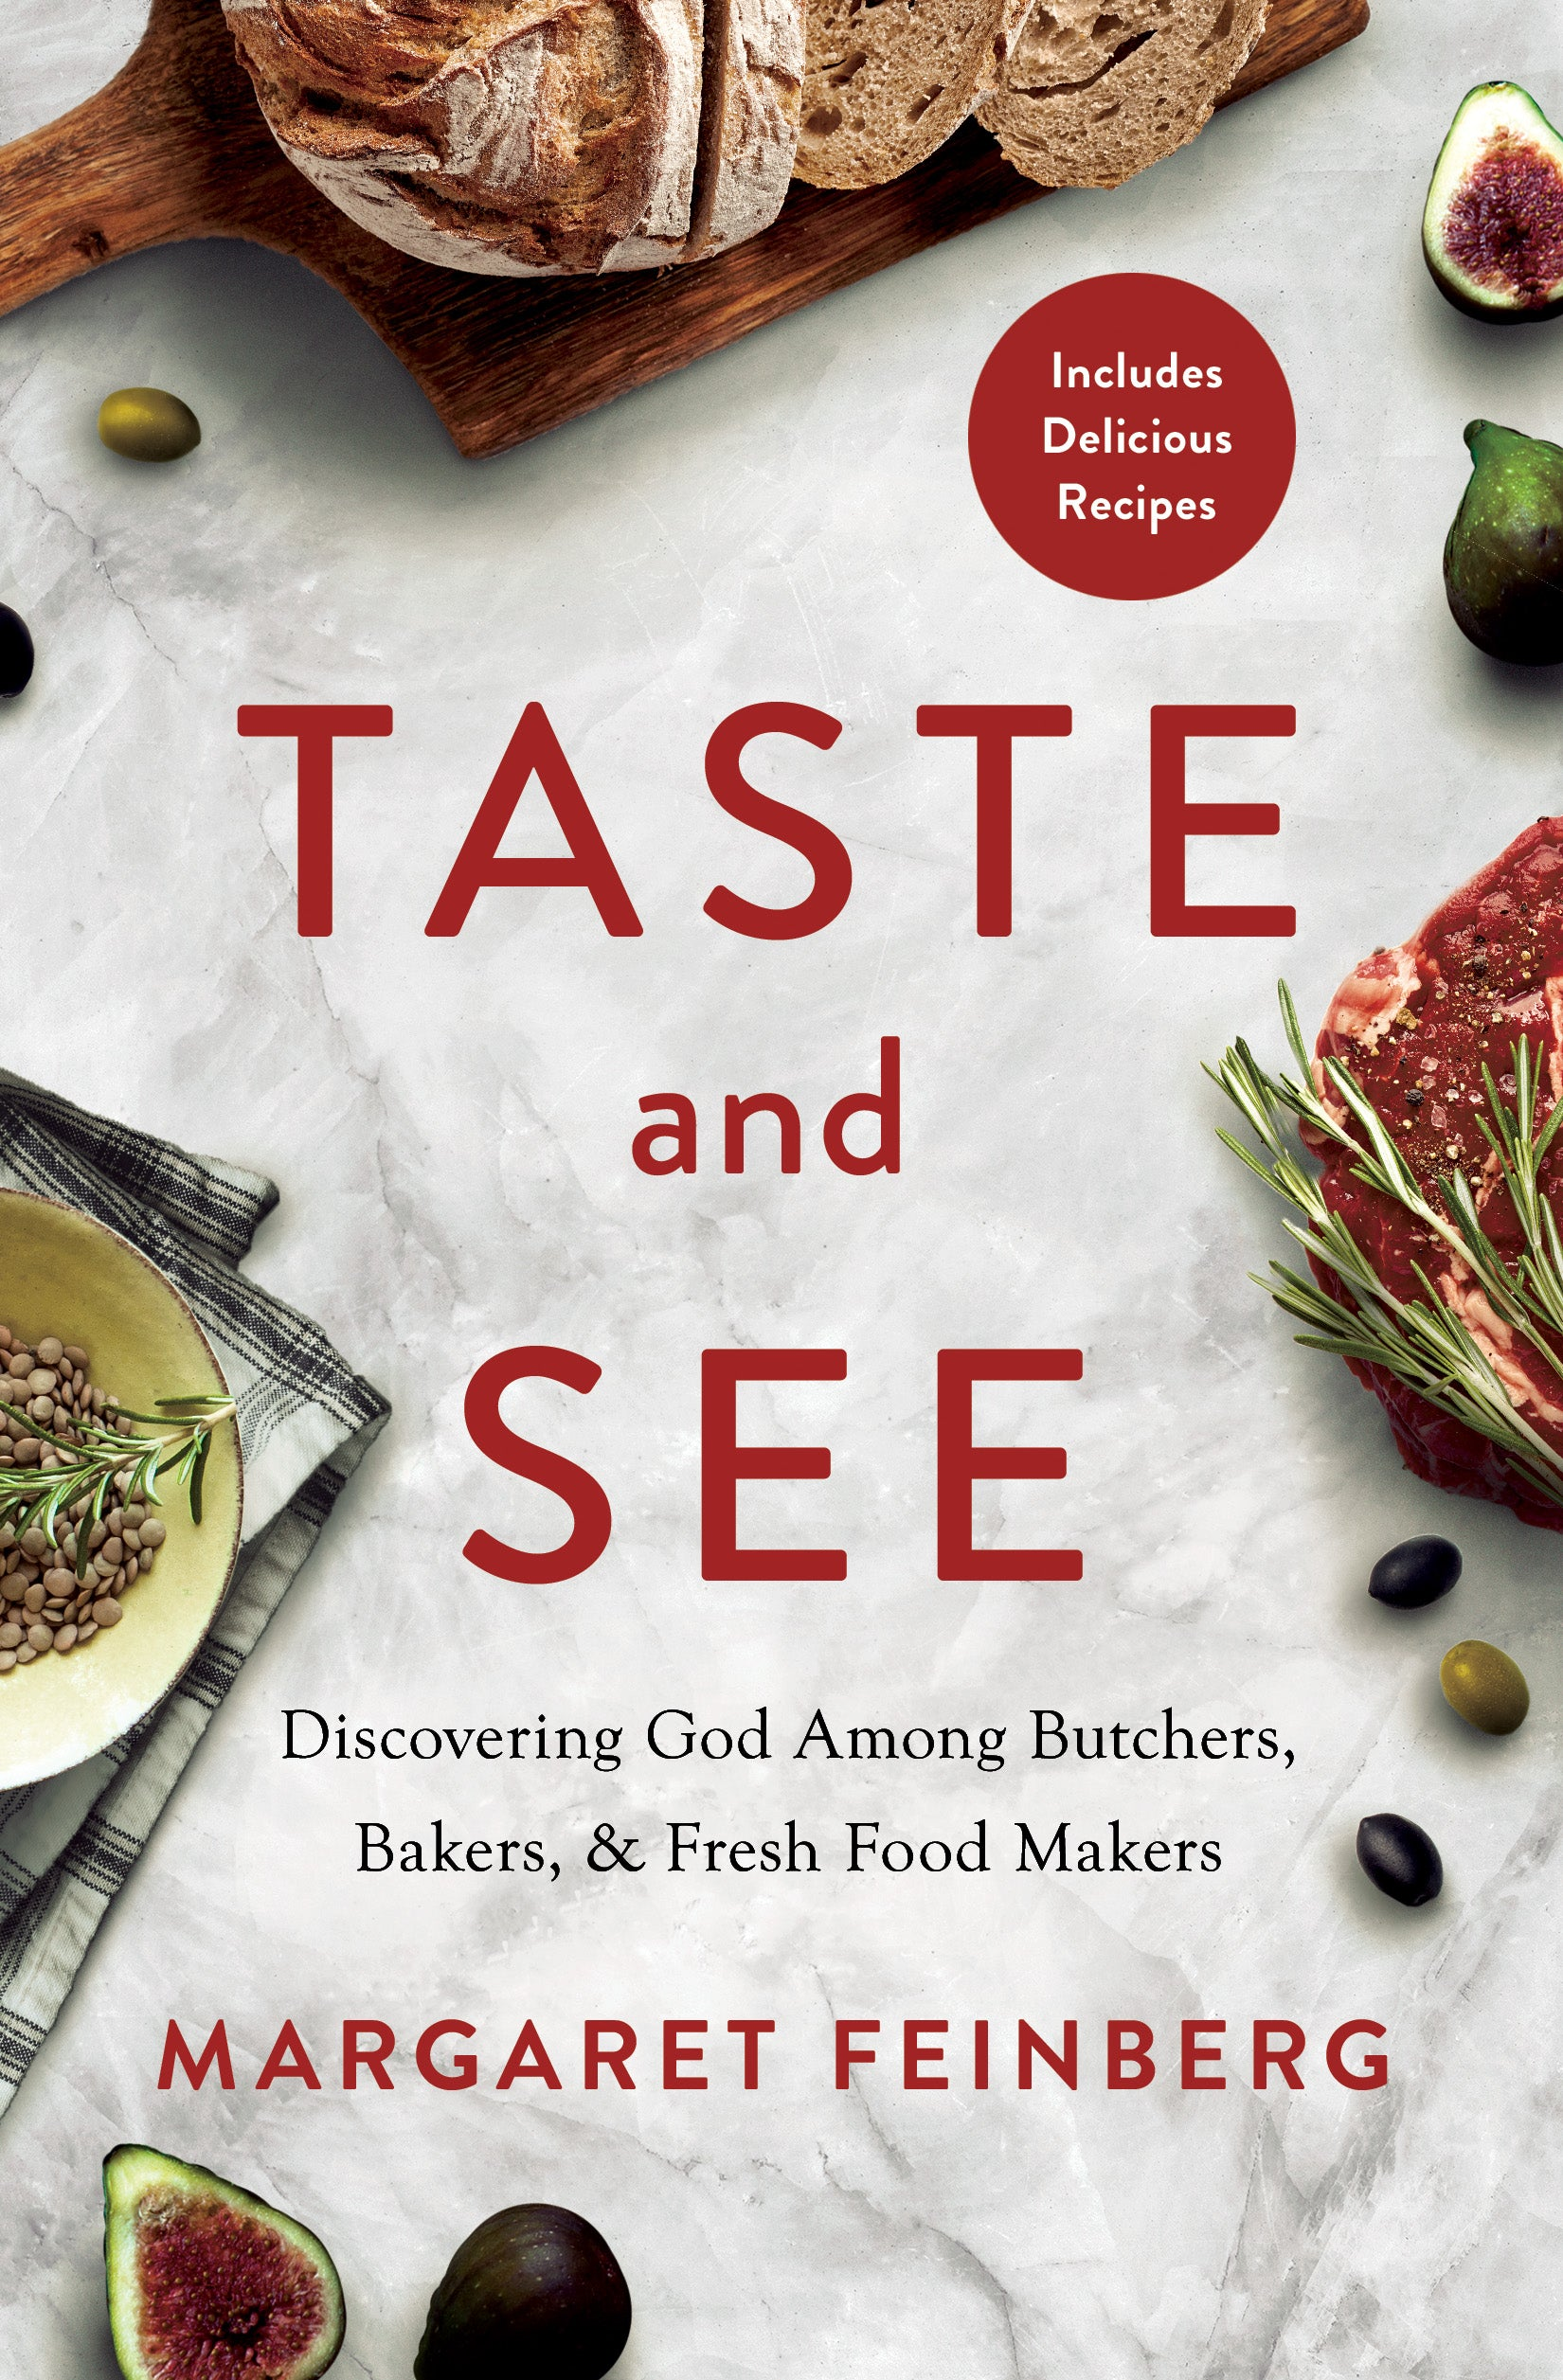 10 Taste and See Study Guide and Book Combination Pack, 1 DVD, PLUS FREE APRON - SHIPS JANUARY 5, 2019